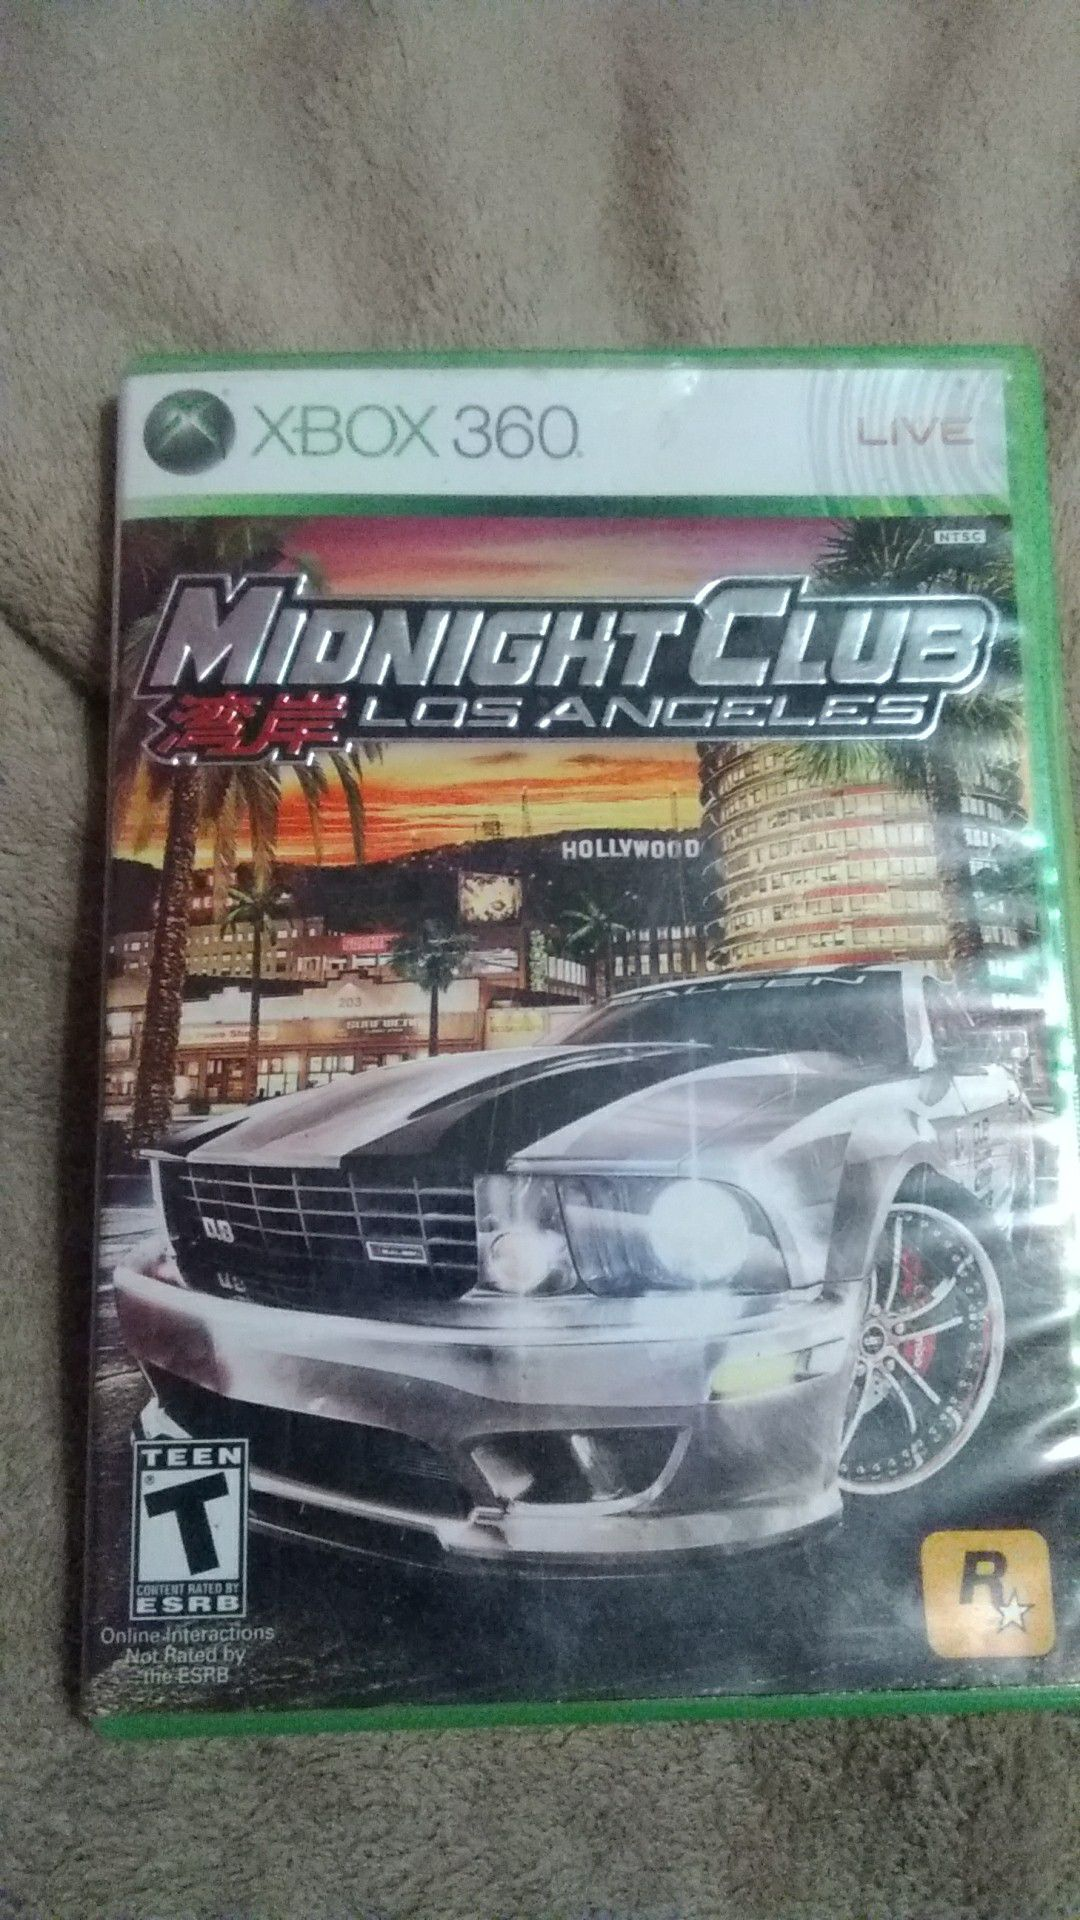 Photo Midnight club never used good condition as well